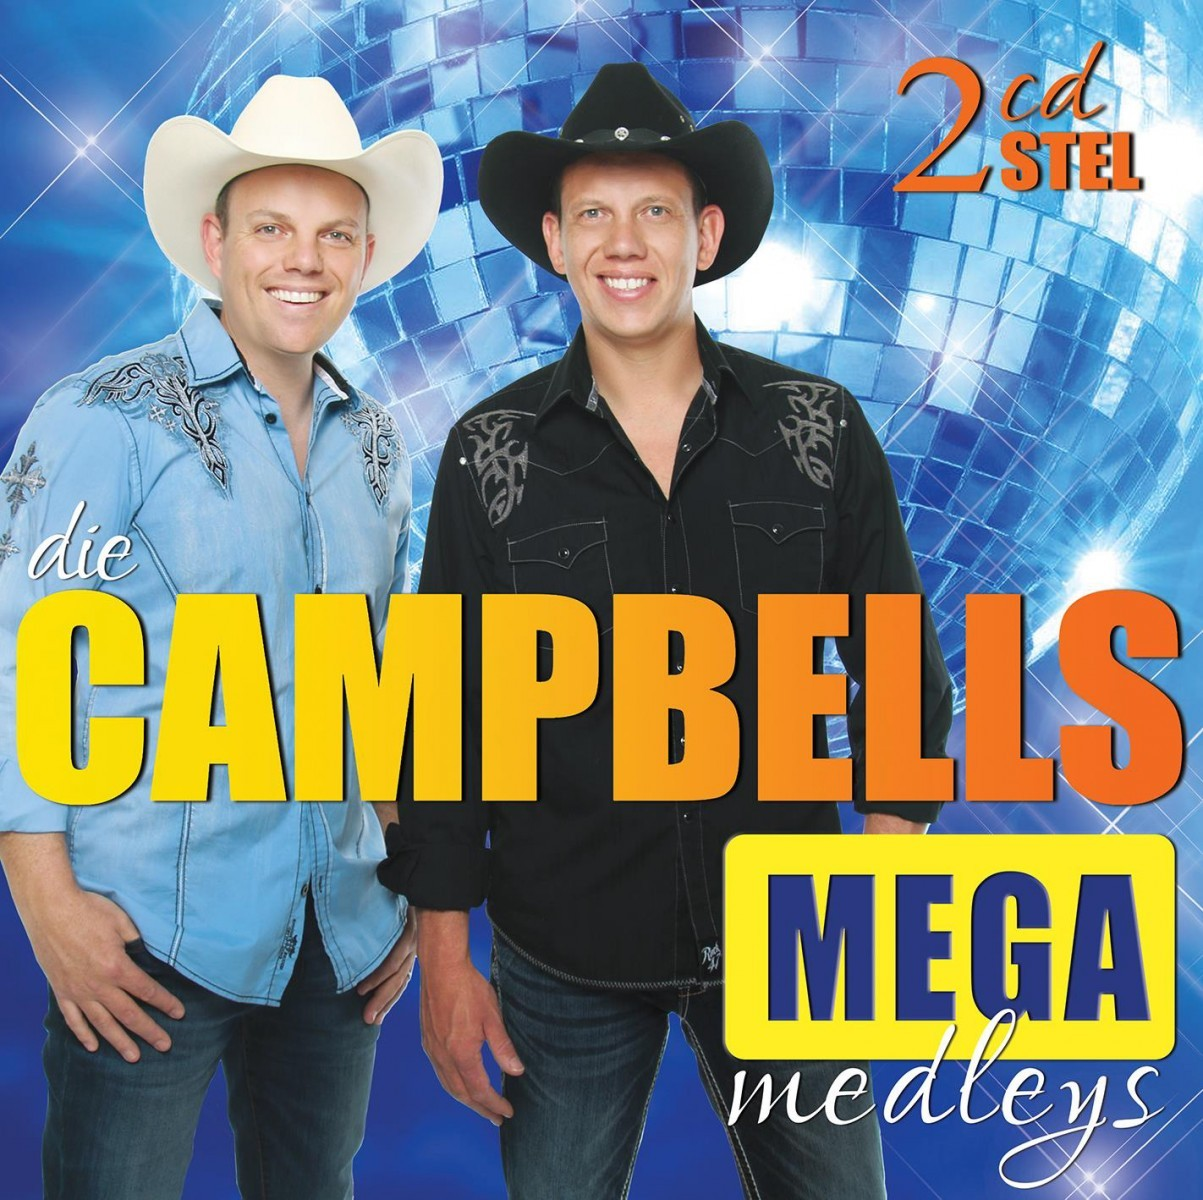 Die Campbells - Mega Medleys CD - CDJUKE 178